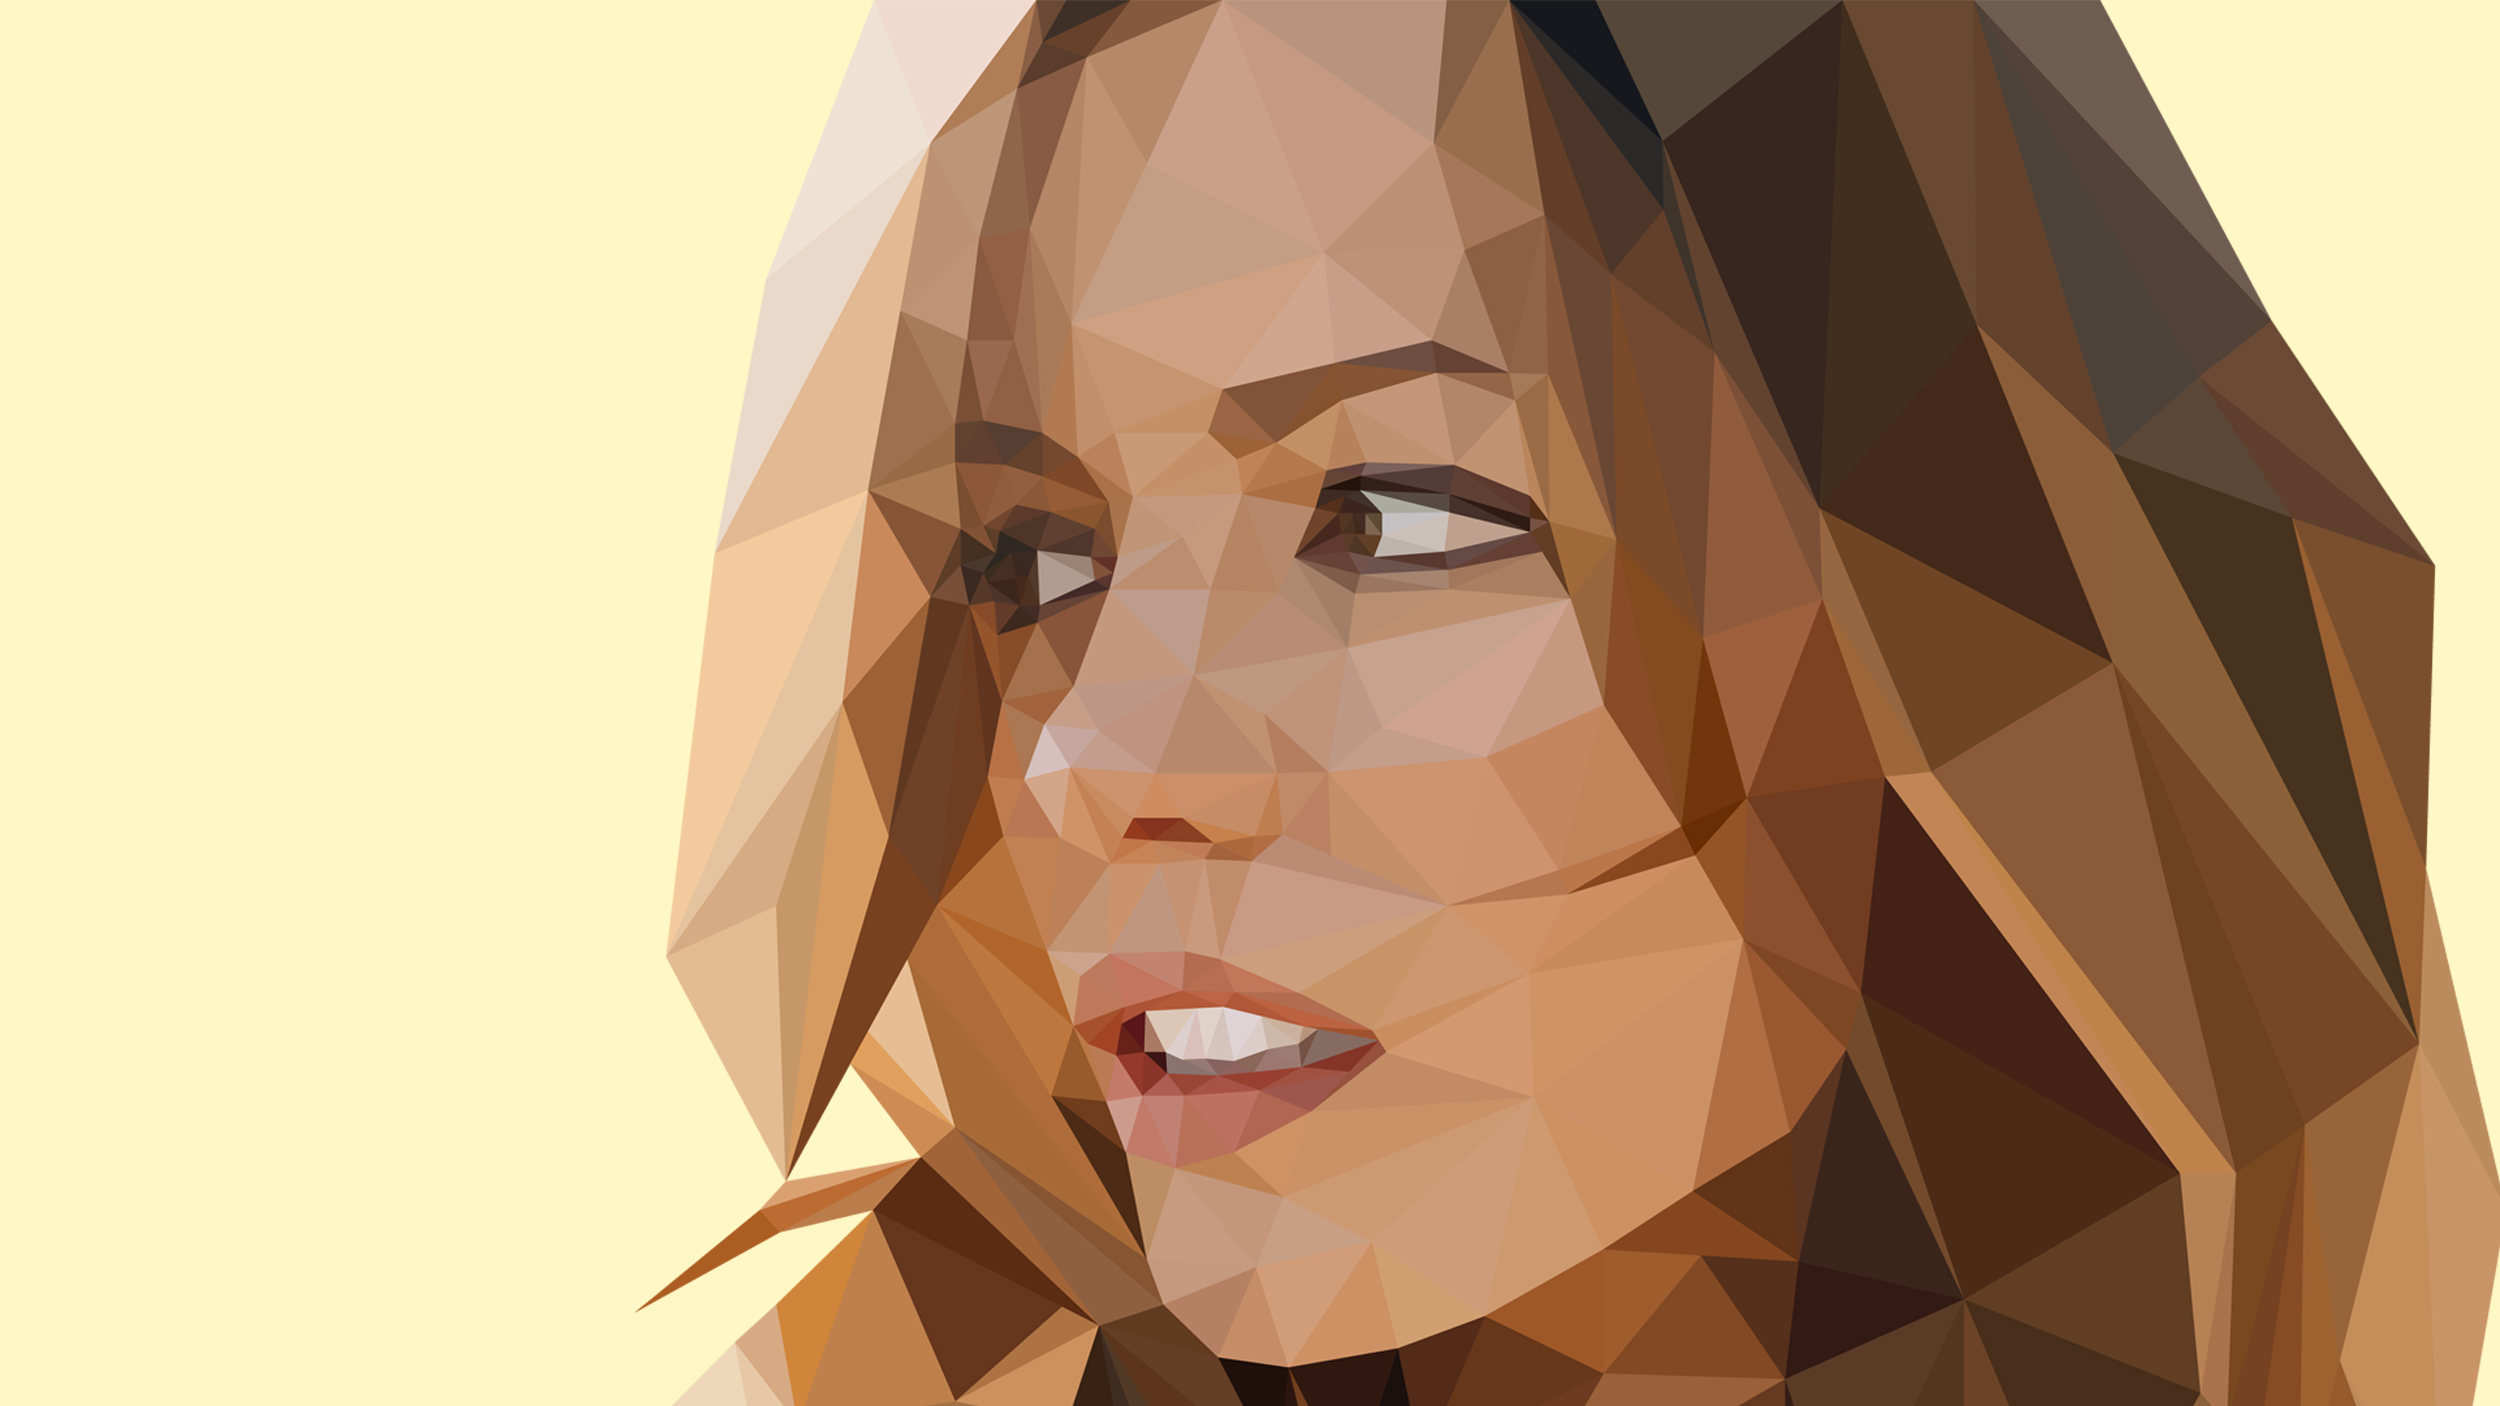 create low poly 2D art of your image